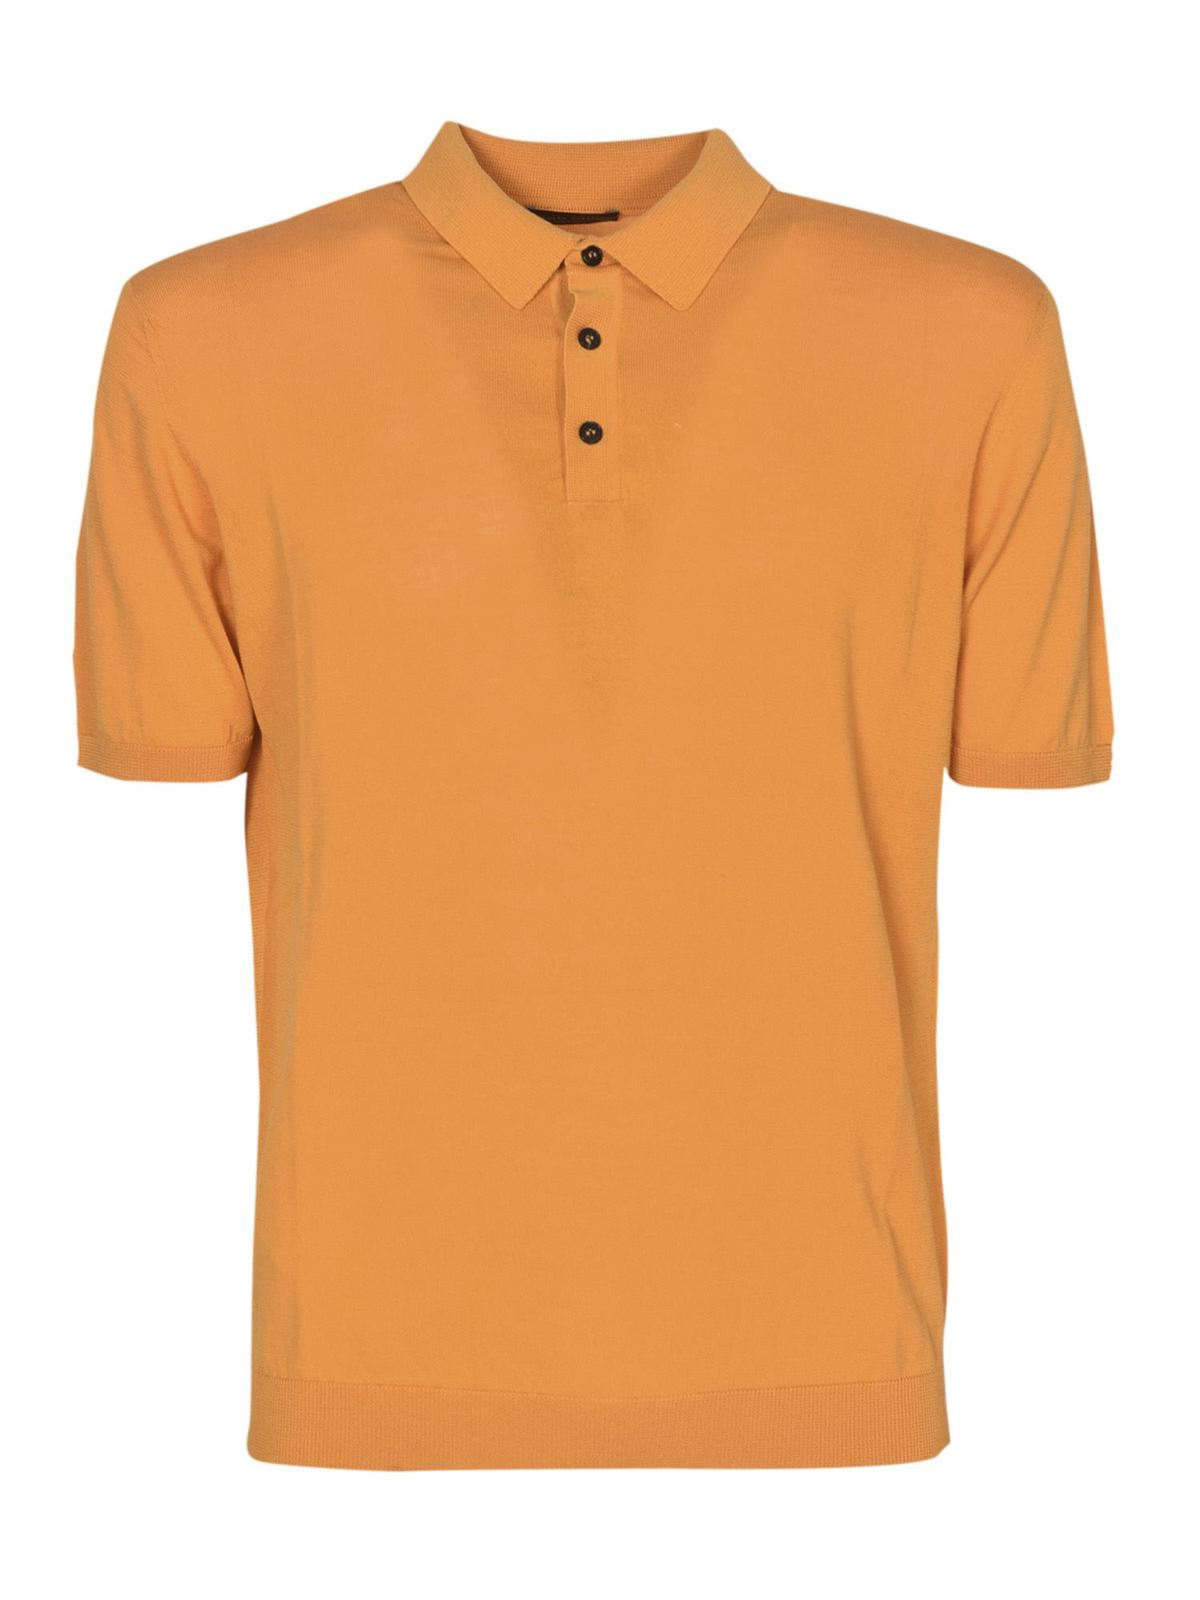 Roberto Collina JERSEY POLO SHIRT IN MELONE COLOR